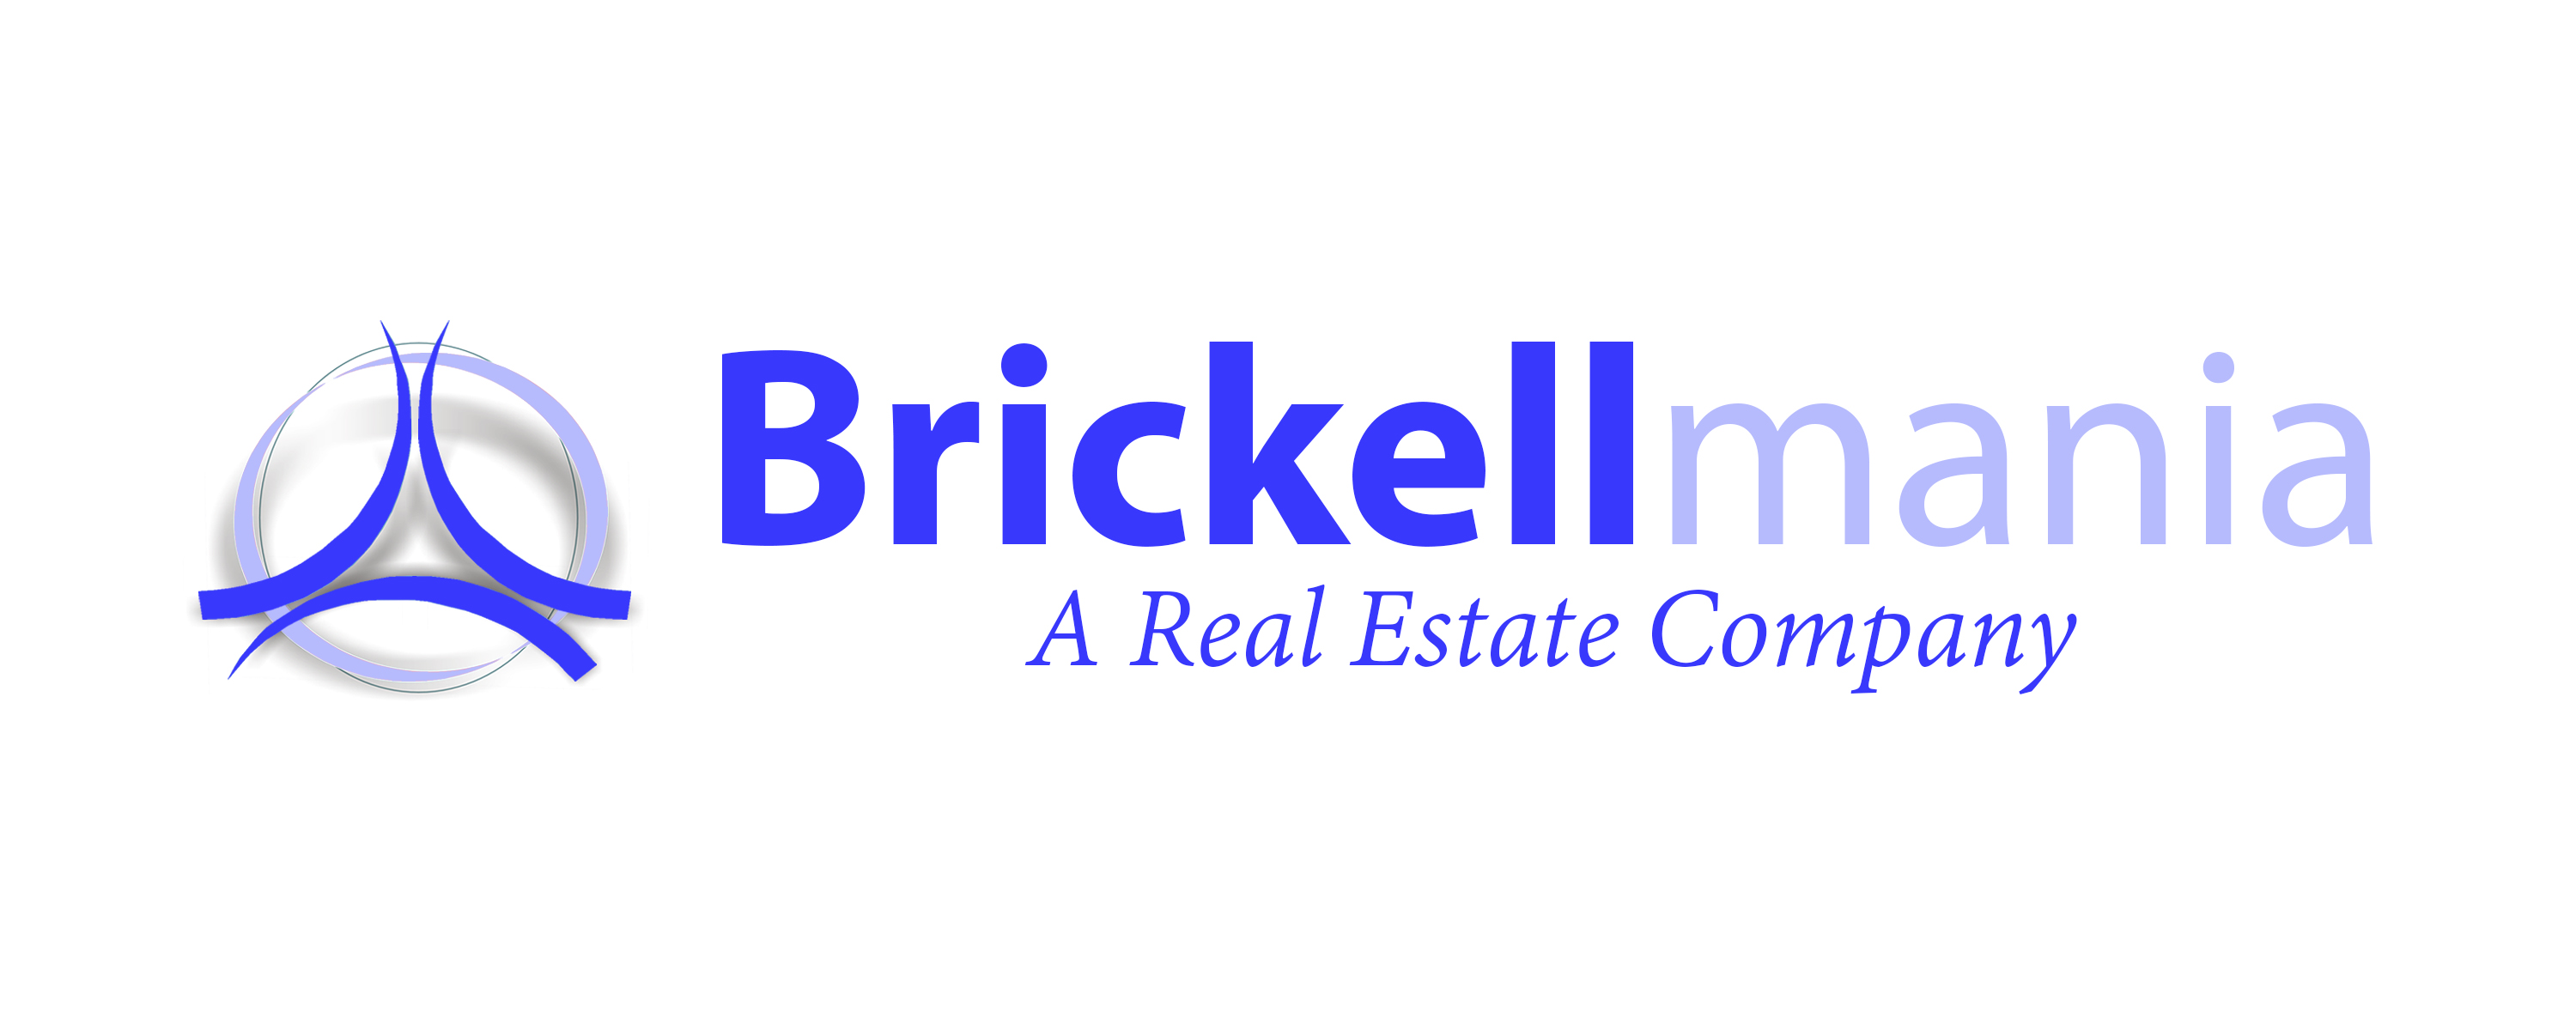 Brickellmania LLC